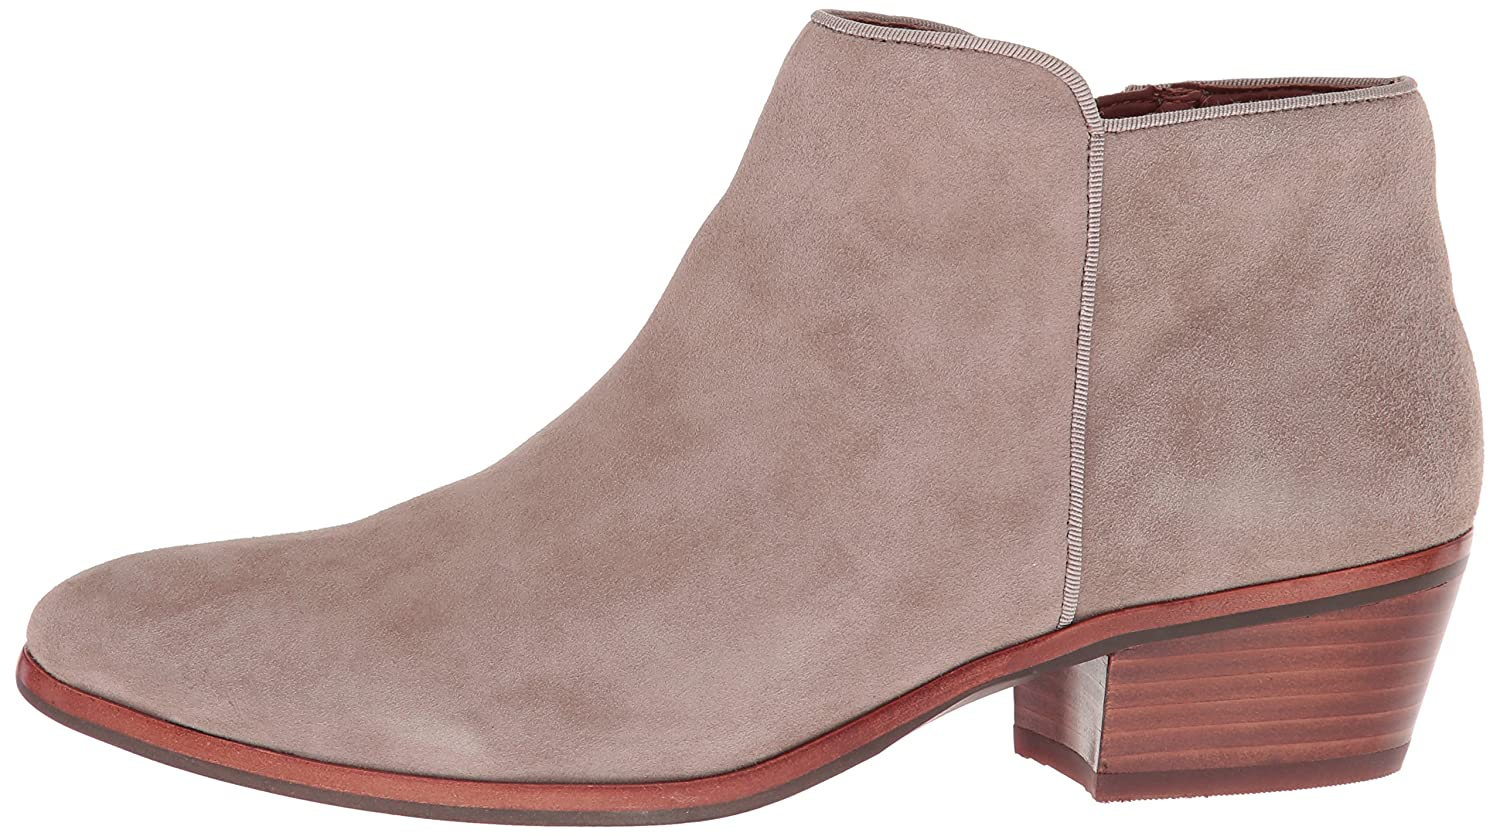 Sam Edelman Women's Petty Ankle Boot B00593P2GK 10.5 B(M) US|Putty Suede